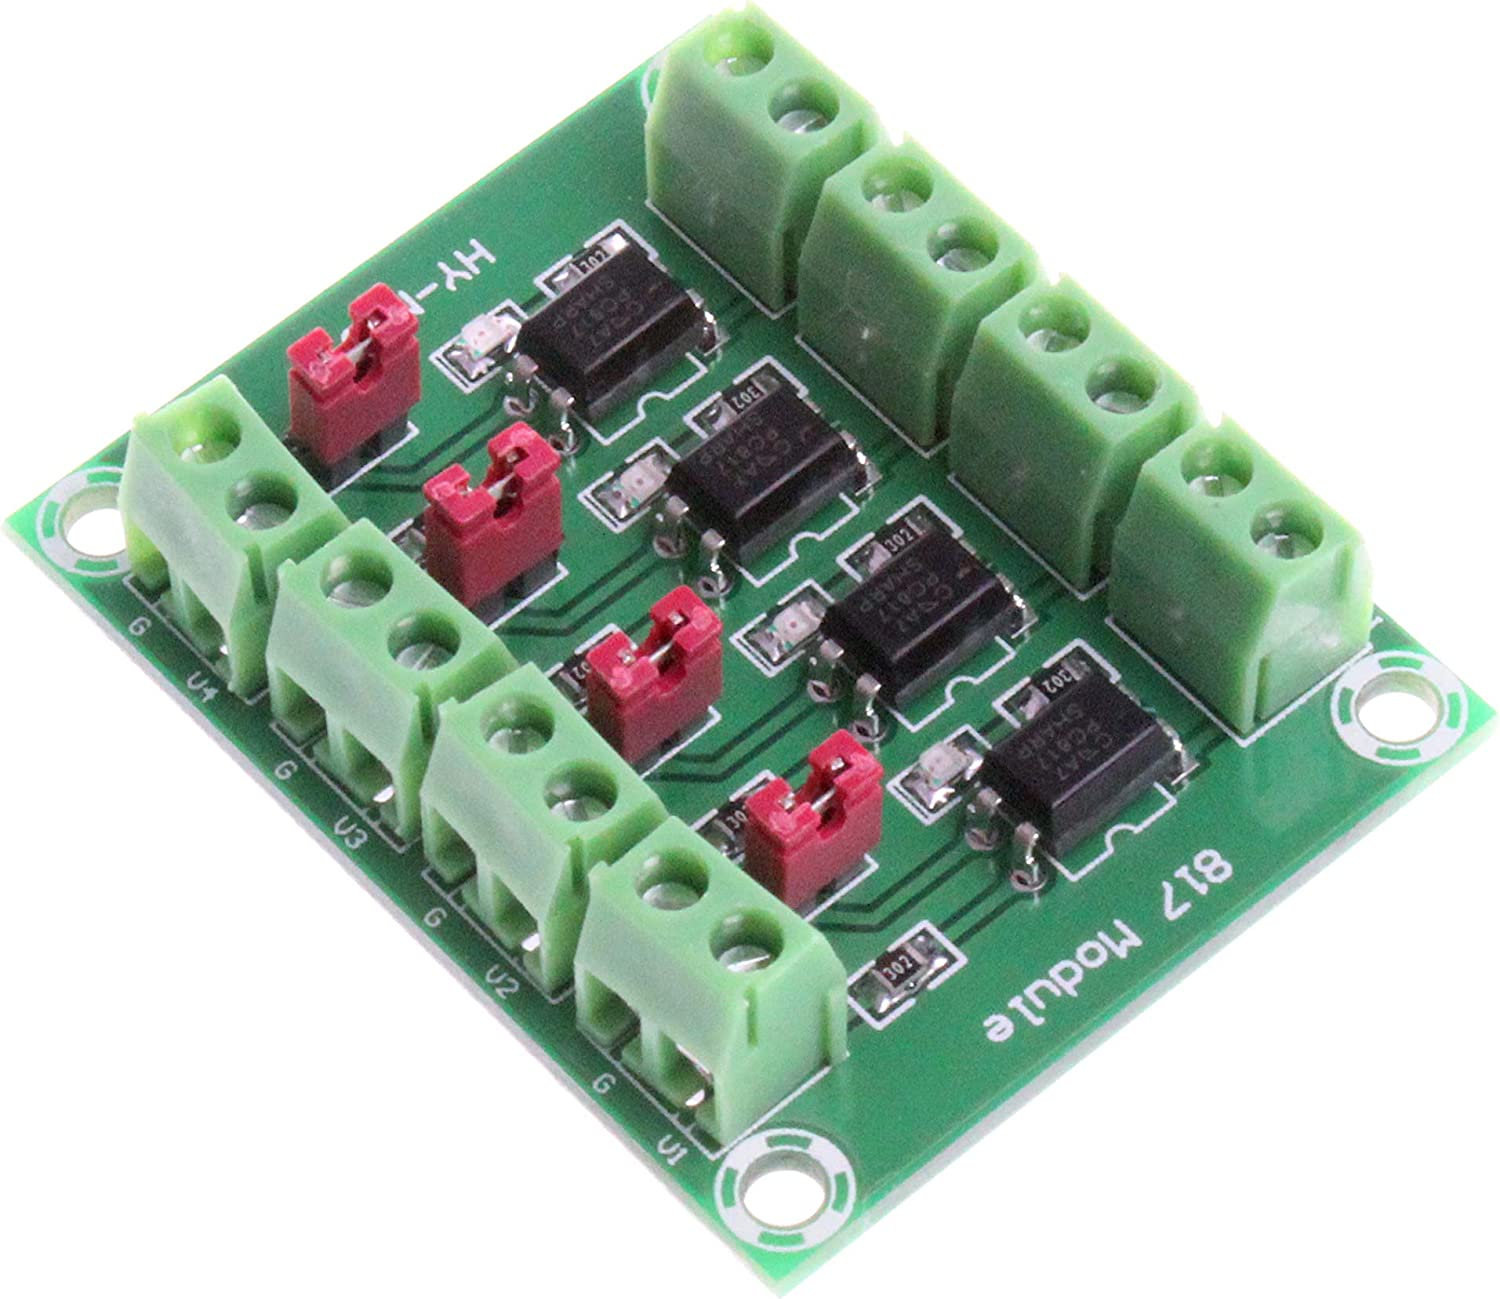 w//Labview driver I2C 8 Ch Opto-isolator LEDs Opto 22